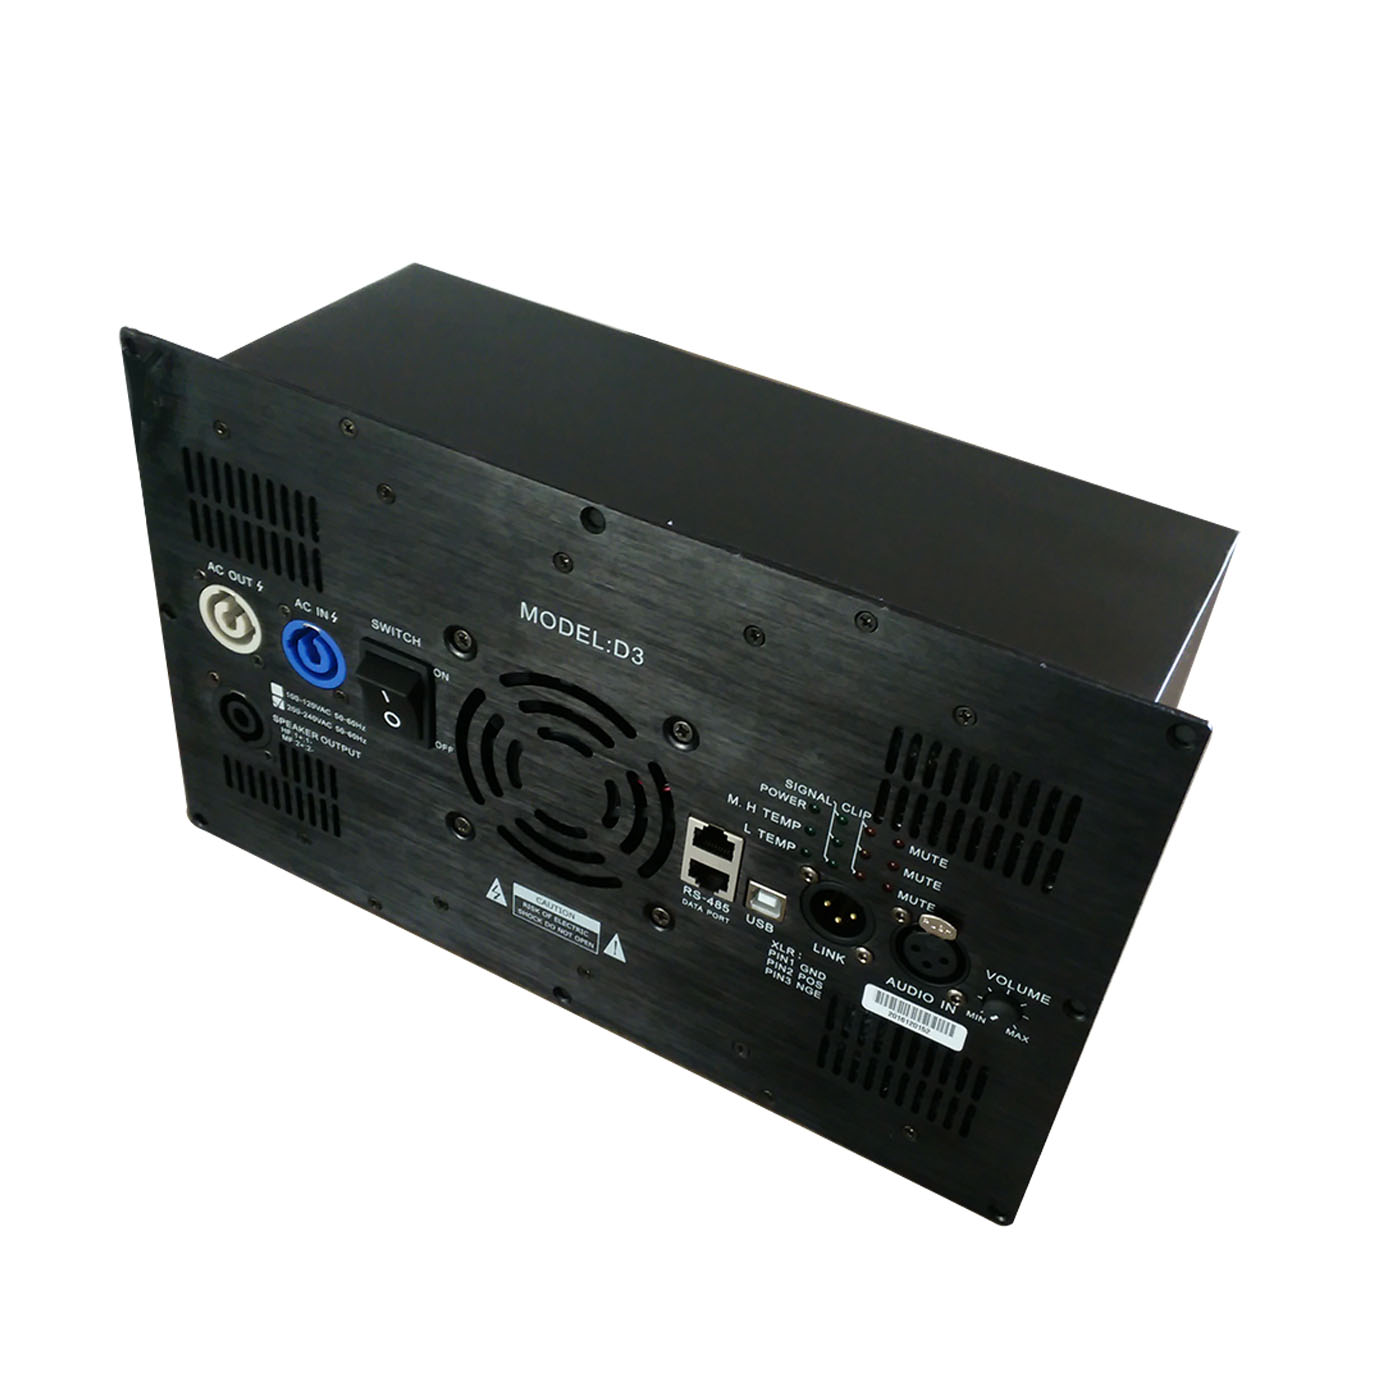 D3 1800W+900W+900W Class D 3CH DSP Amplifier Module for Active Speaker